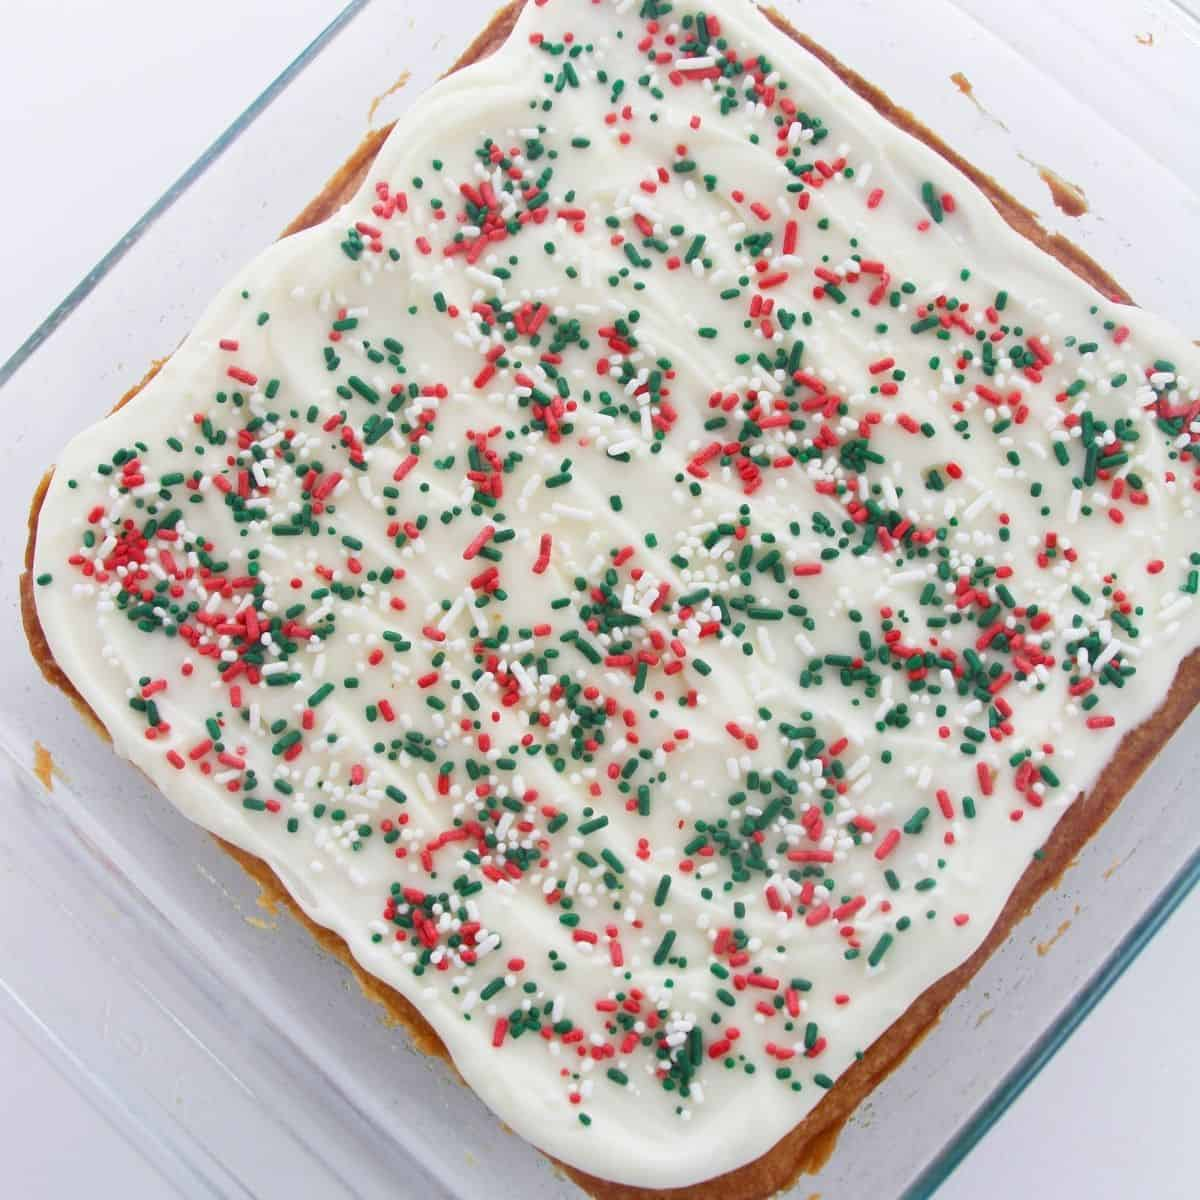 A finished sugar cookie cake topped with red, green, and white sprinkles.